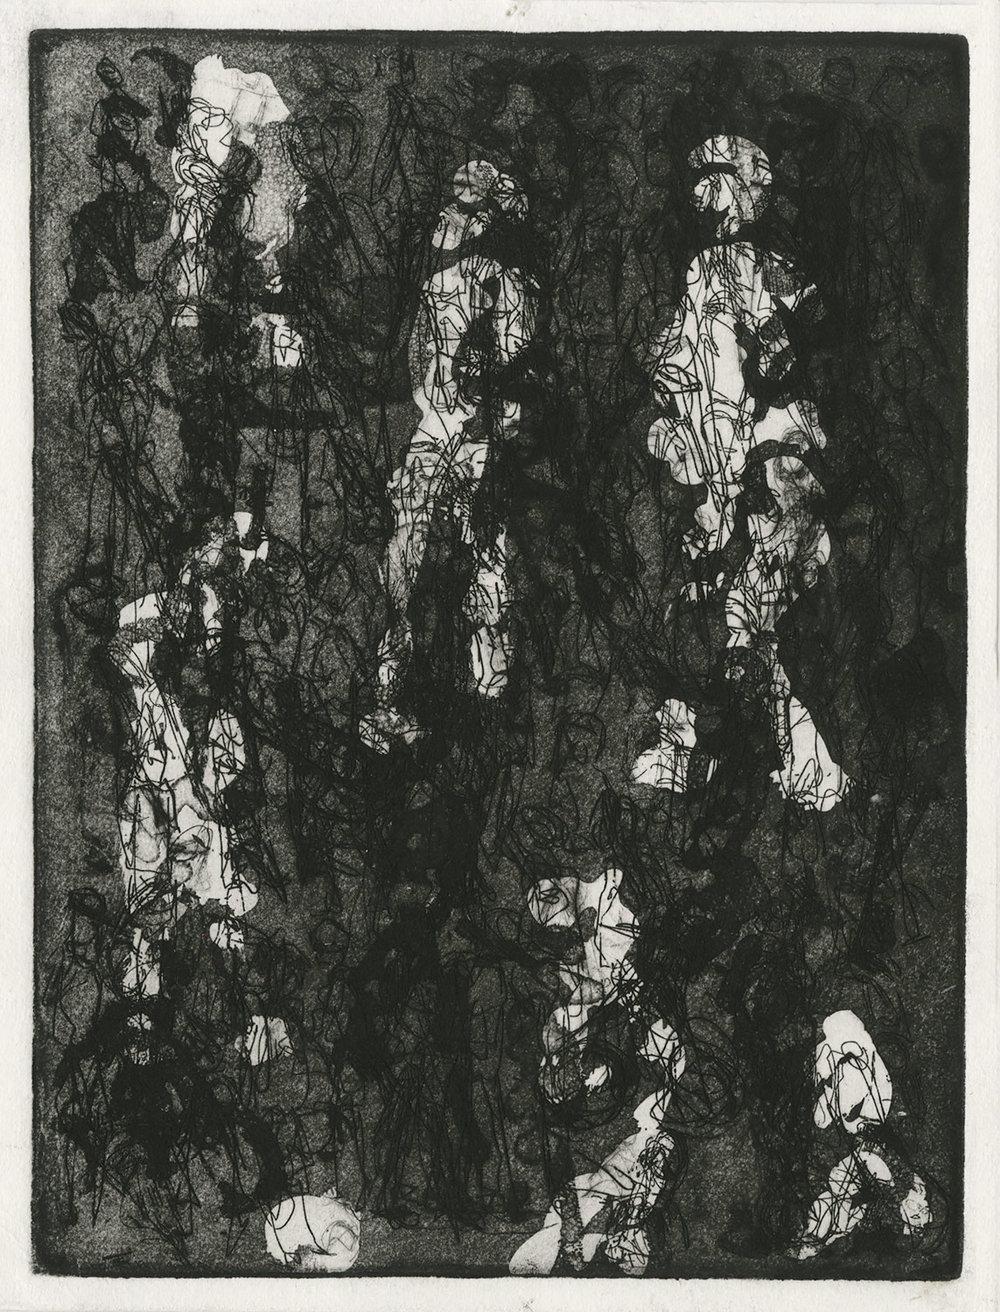 one plate  state V, 2015, zinc etching on Hanhnemuhle, 20 x 15 cm